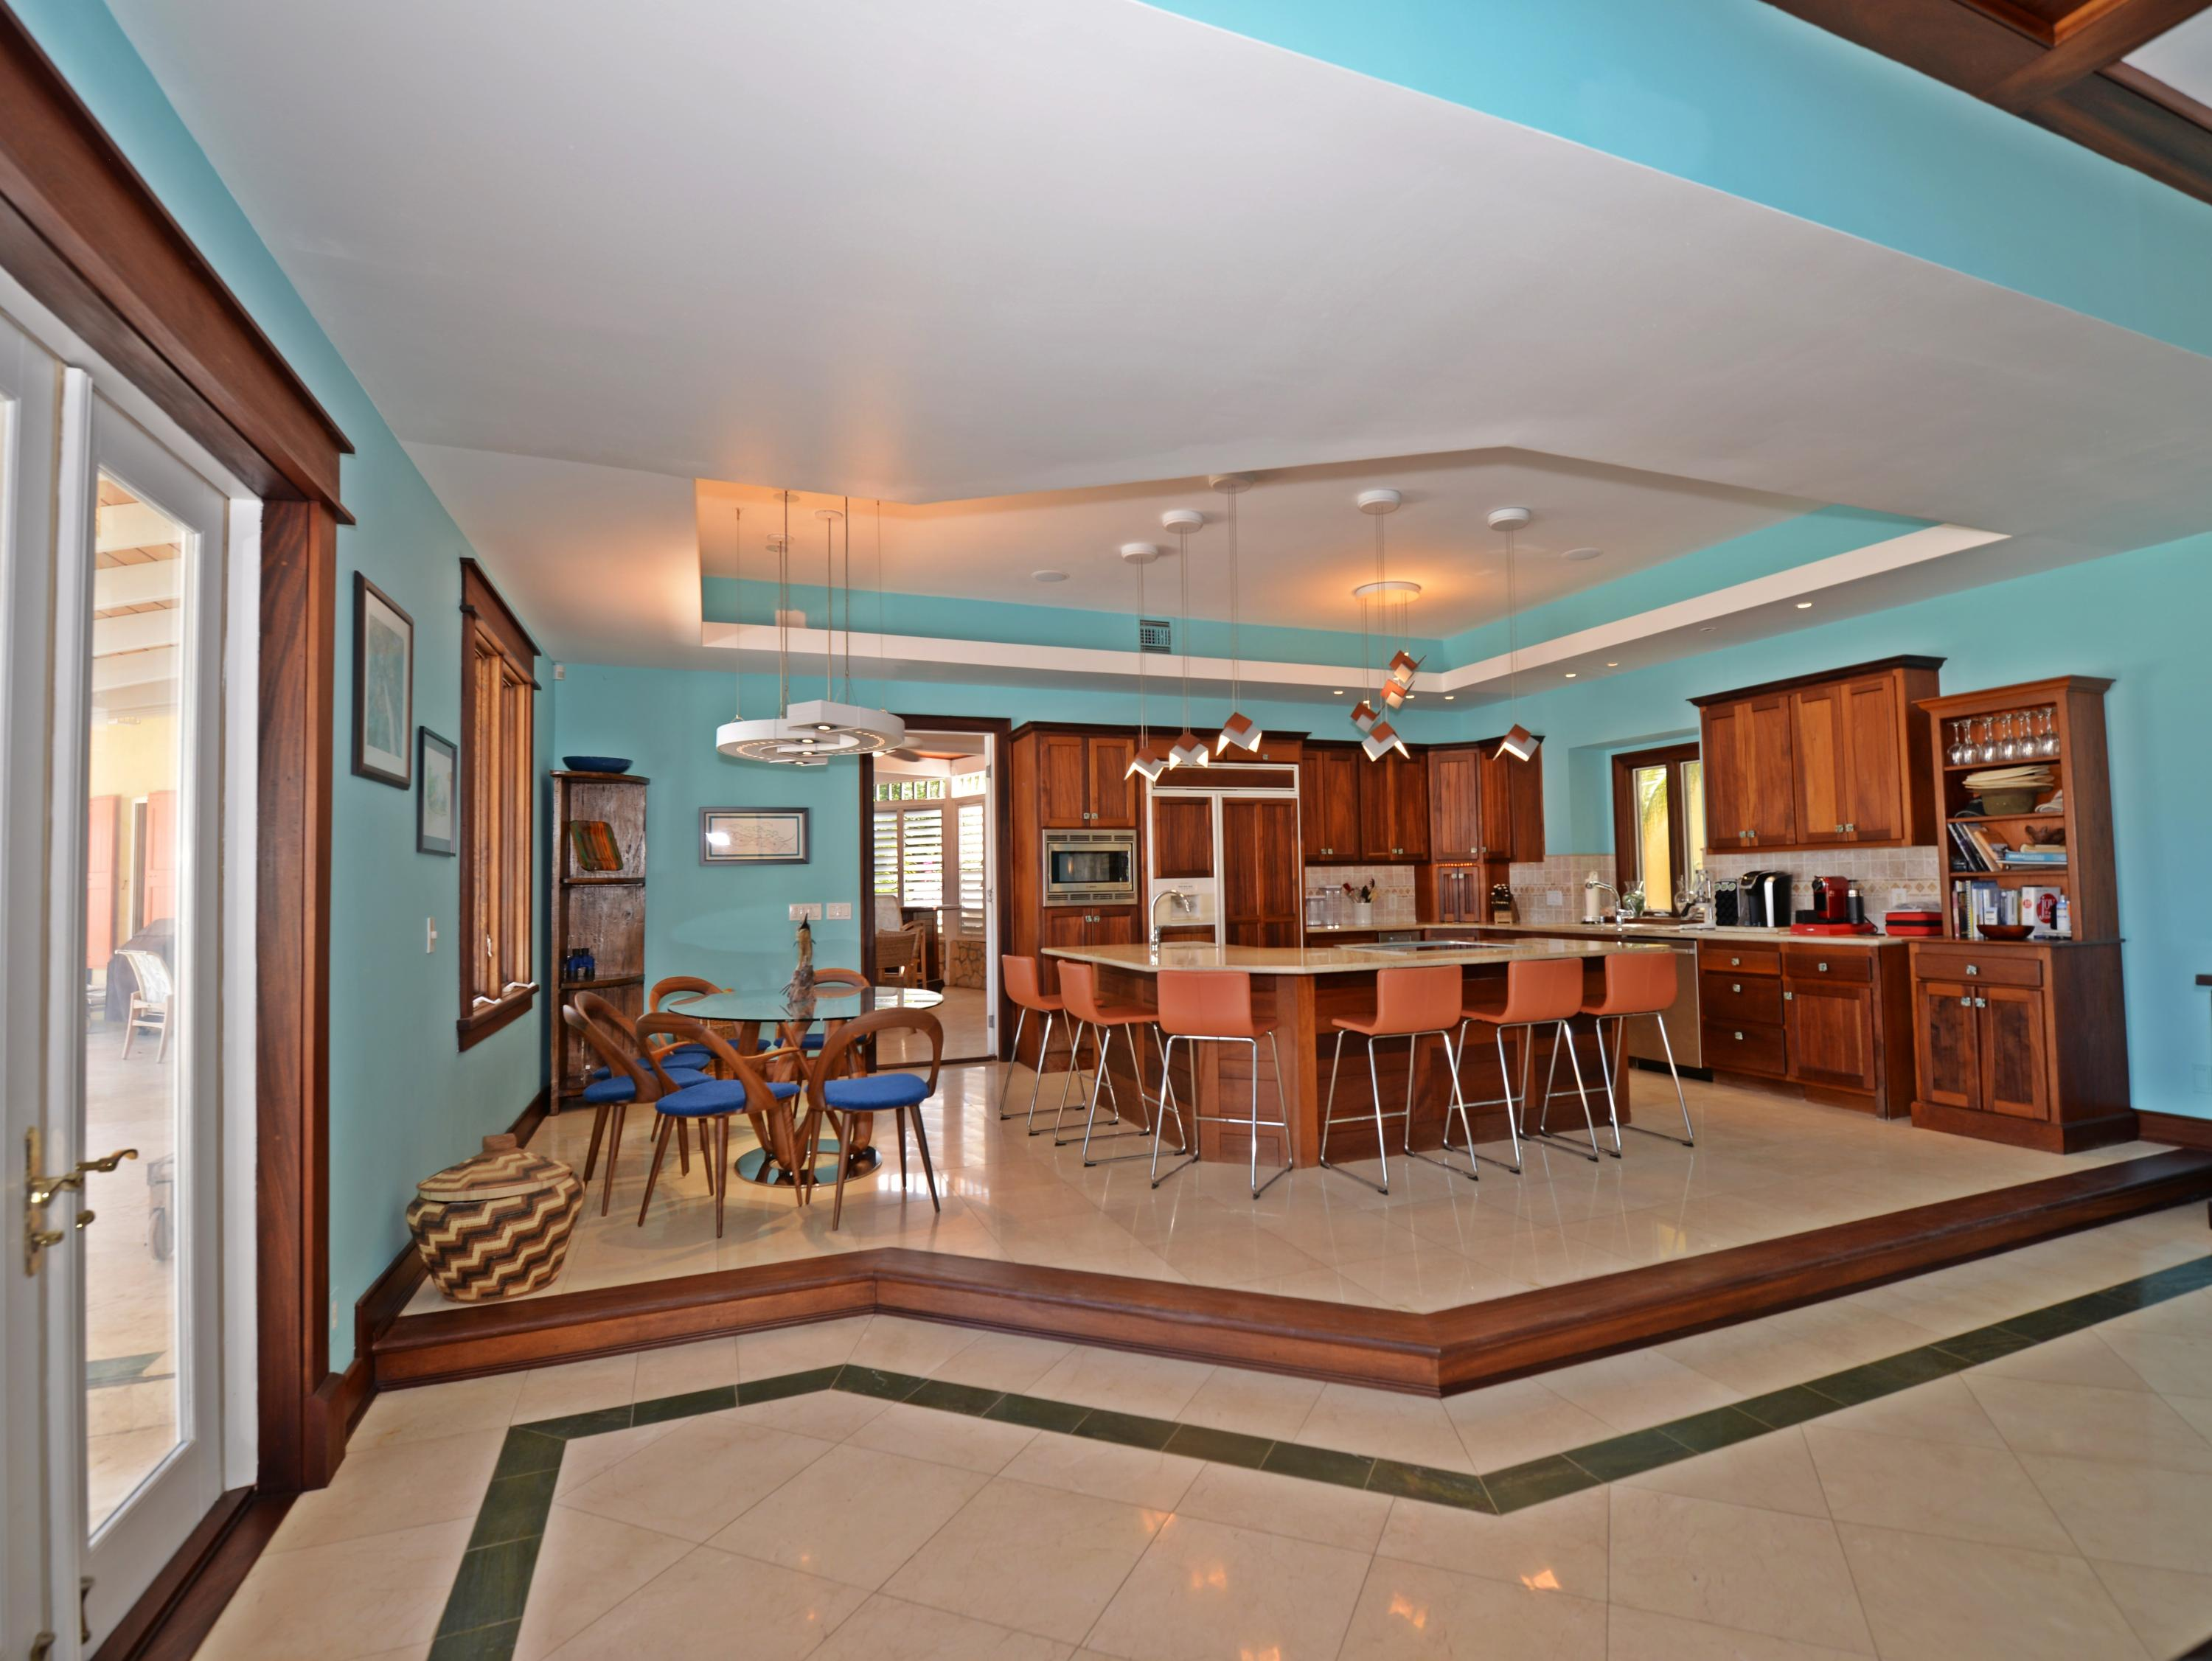 Dining and gourmet kitchen